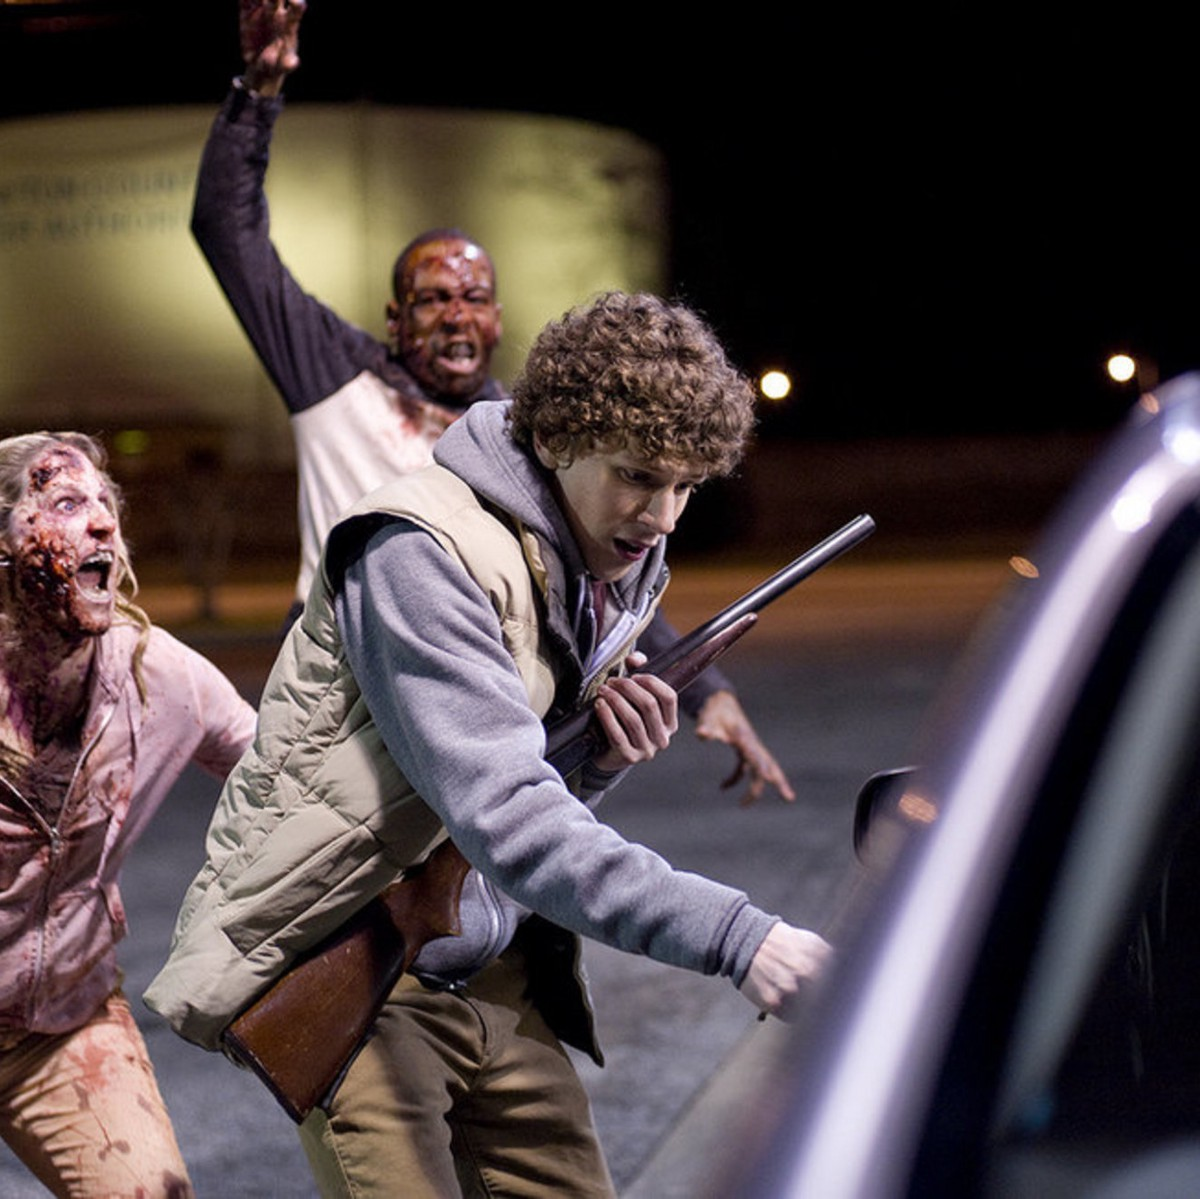 Zombie Films Used to Have Brains. Now They're Right-Wing Drivel.